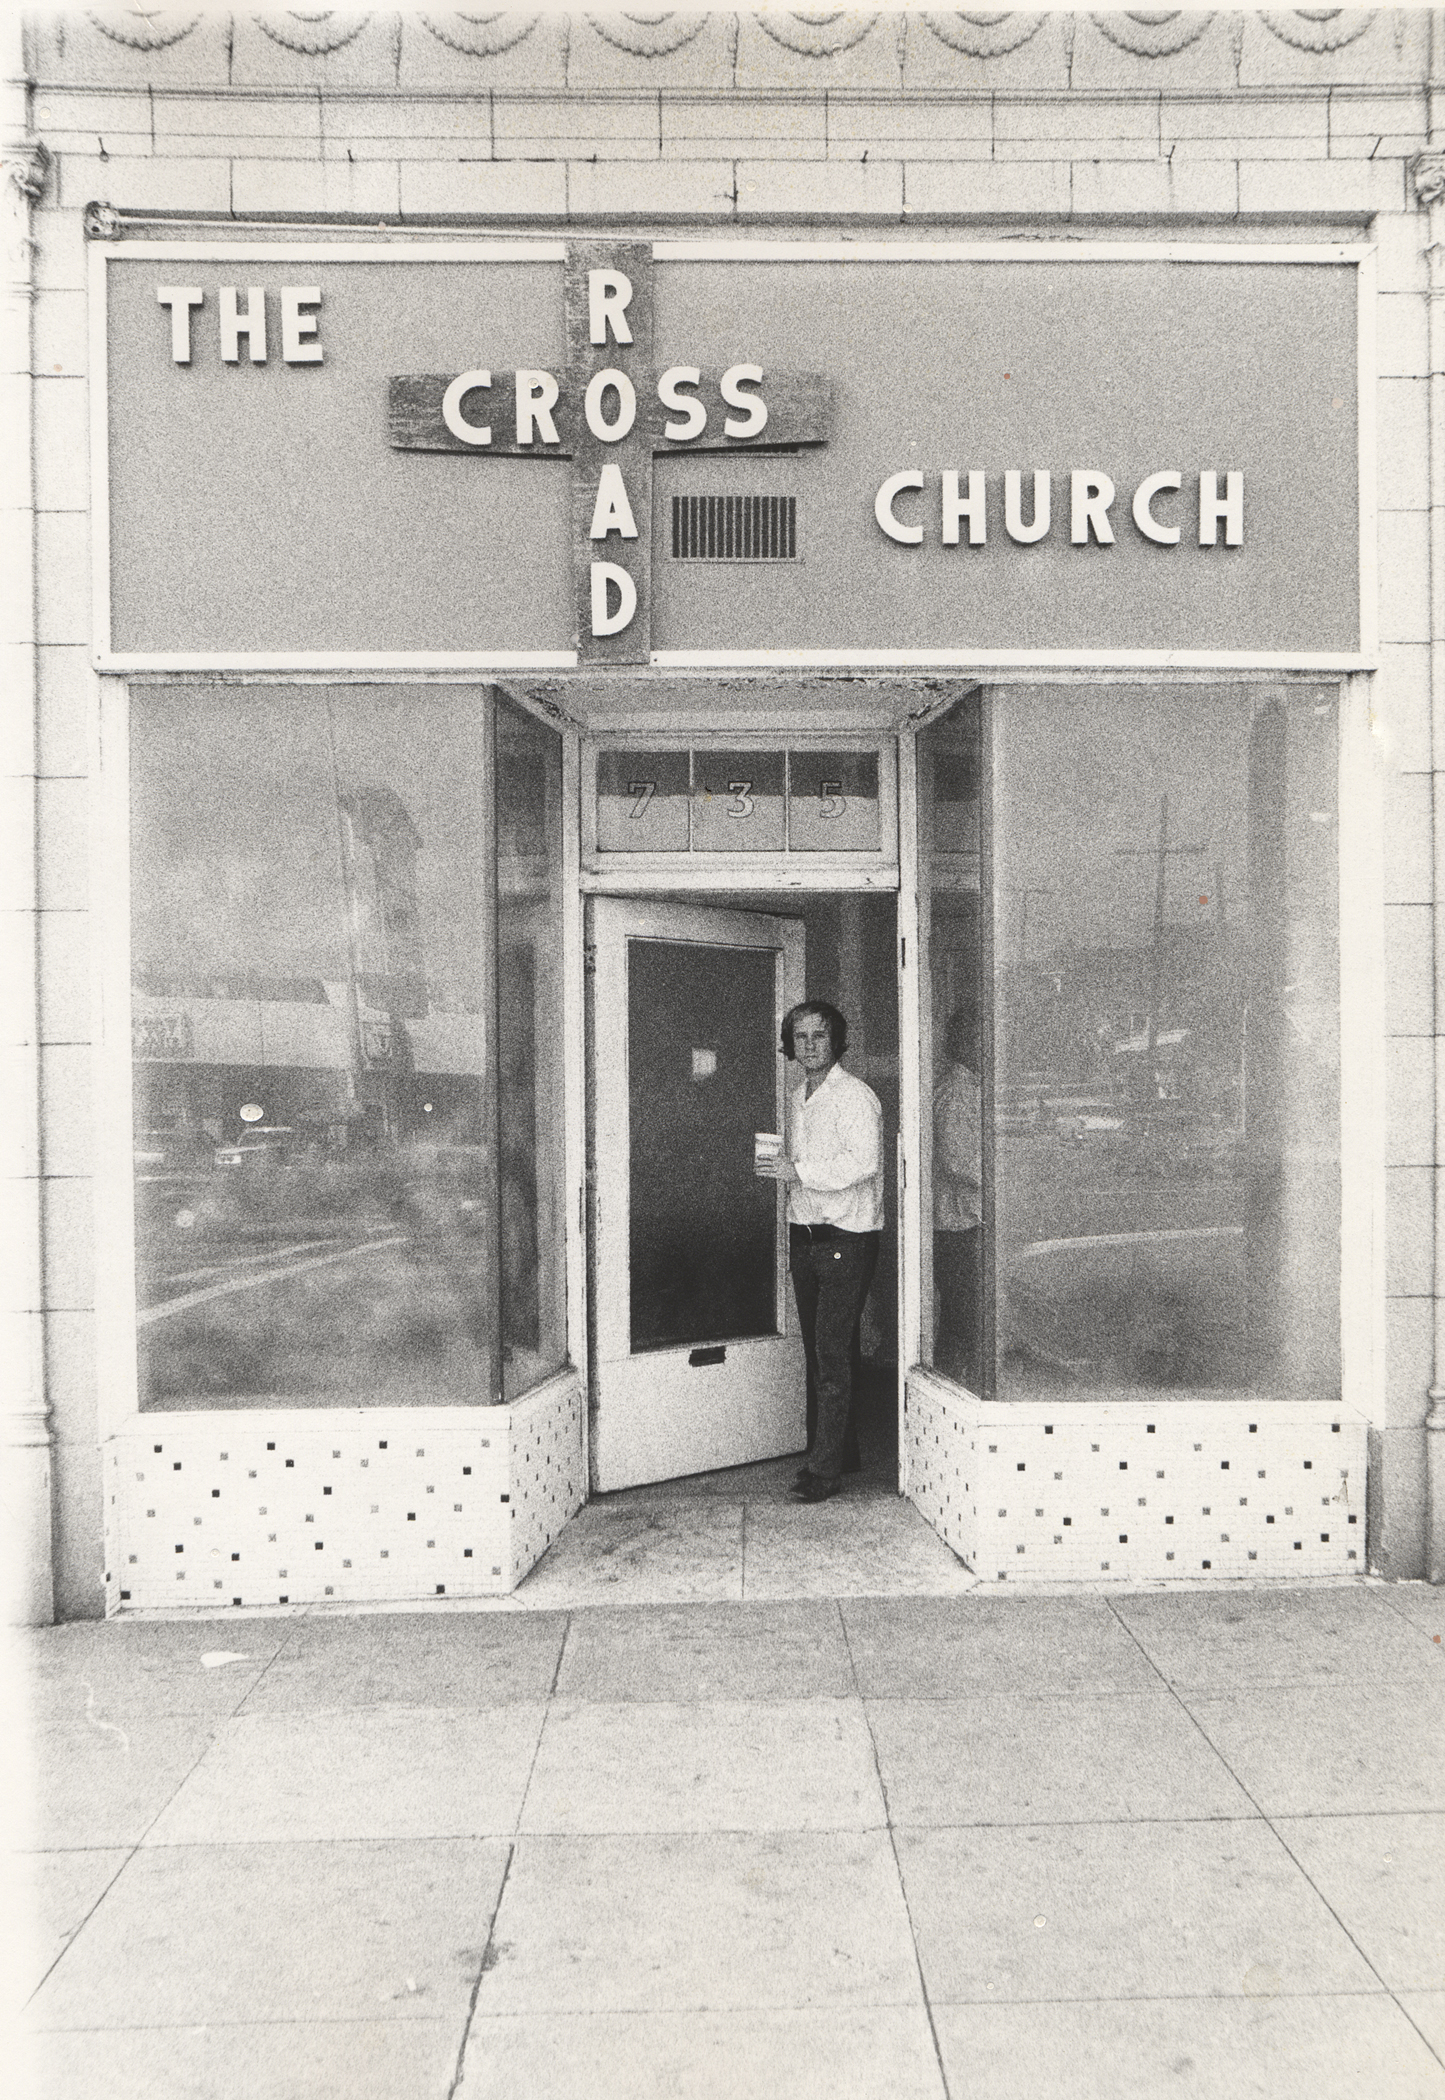 The Cross Road Church, 1970/71, by Jerry McMillan  One of multiple studios Joe had on Western Avenue during the 60s and 70s, this one at 735 N Western Ave.